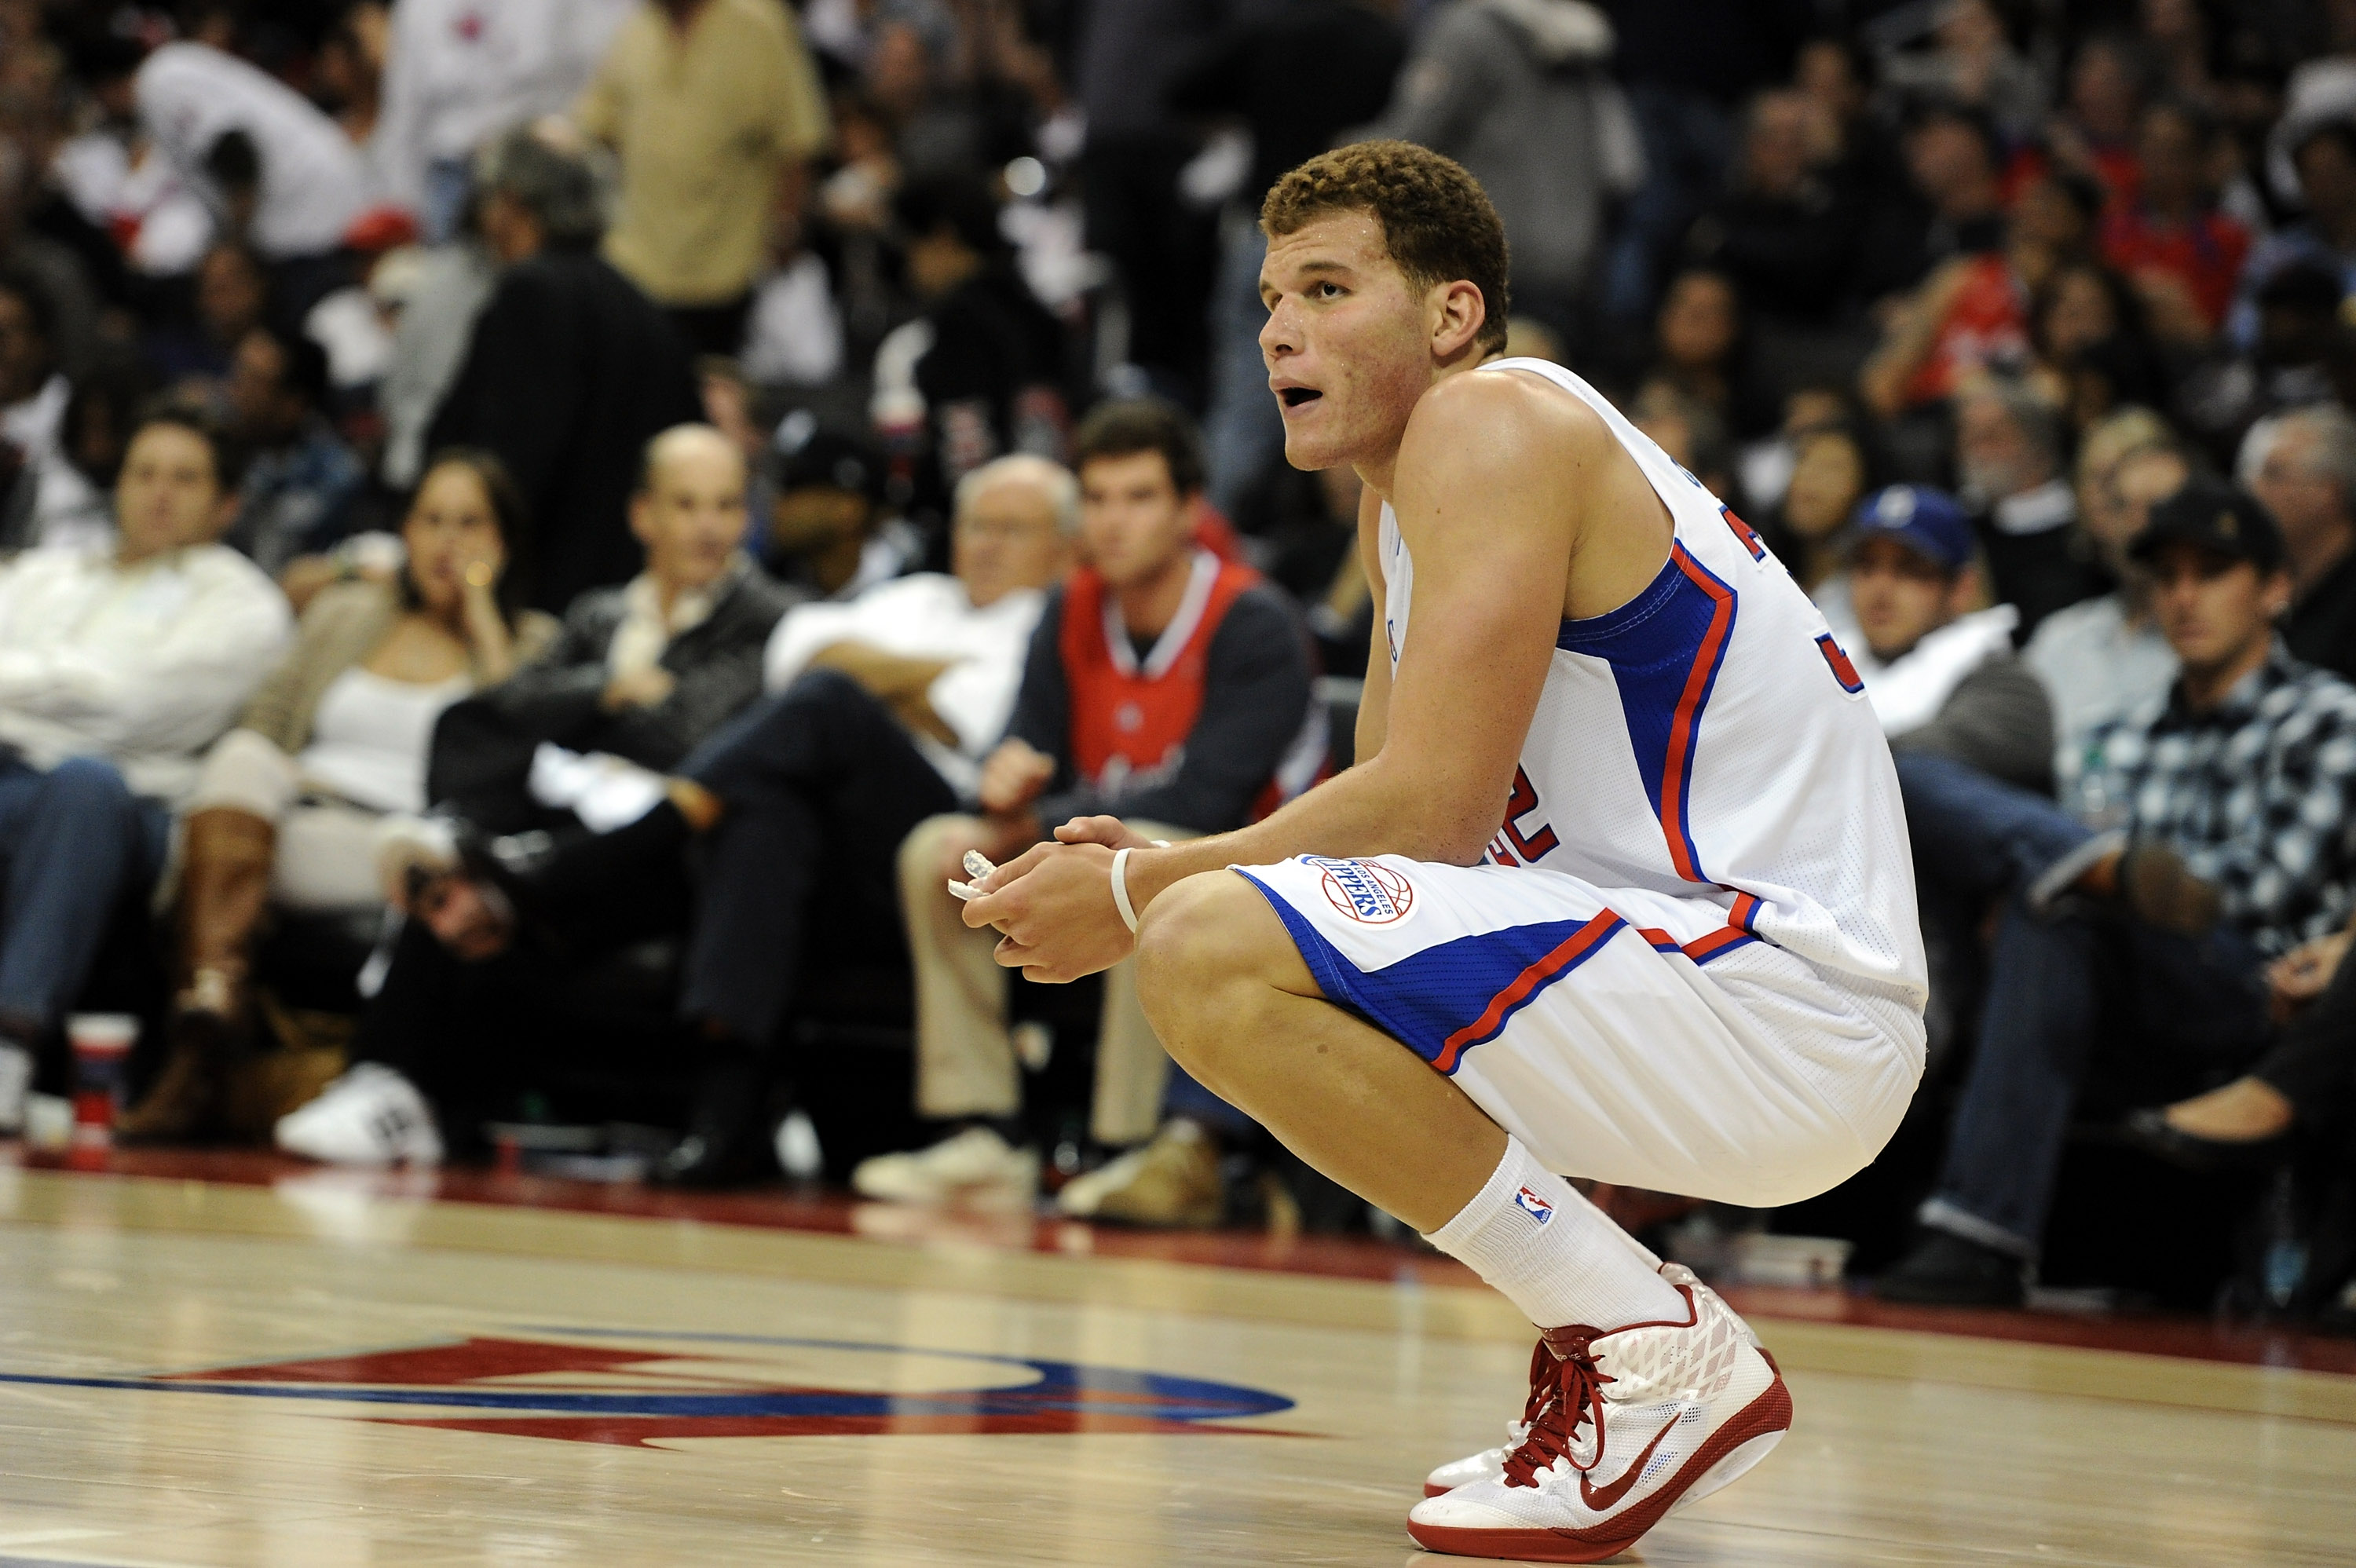 LOS ANGELES, CA - OCTOBER 27:  Blake Griffin #35 of the Los Angeles Clippers reacts during a 98-88 loss to the Portland Trail Blazers at Staples Center on October 27, 2010 in Los Angeles, California. NOTE TO USER: User expressly acknowledges and agrees th